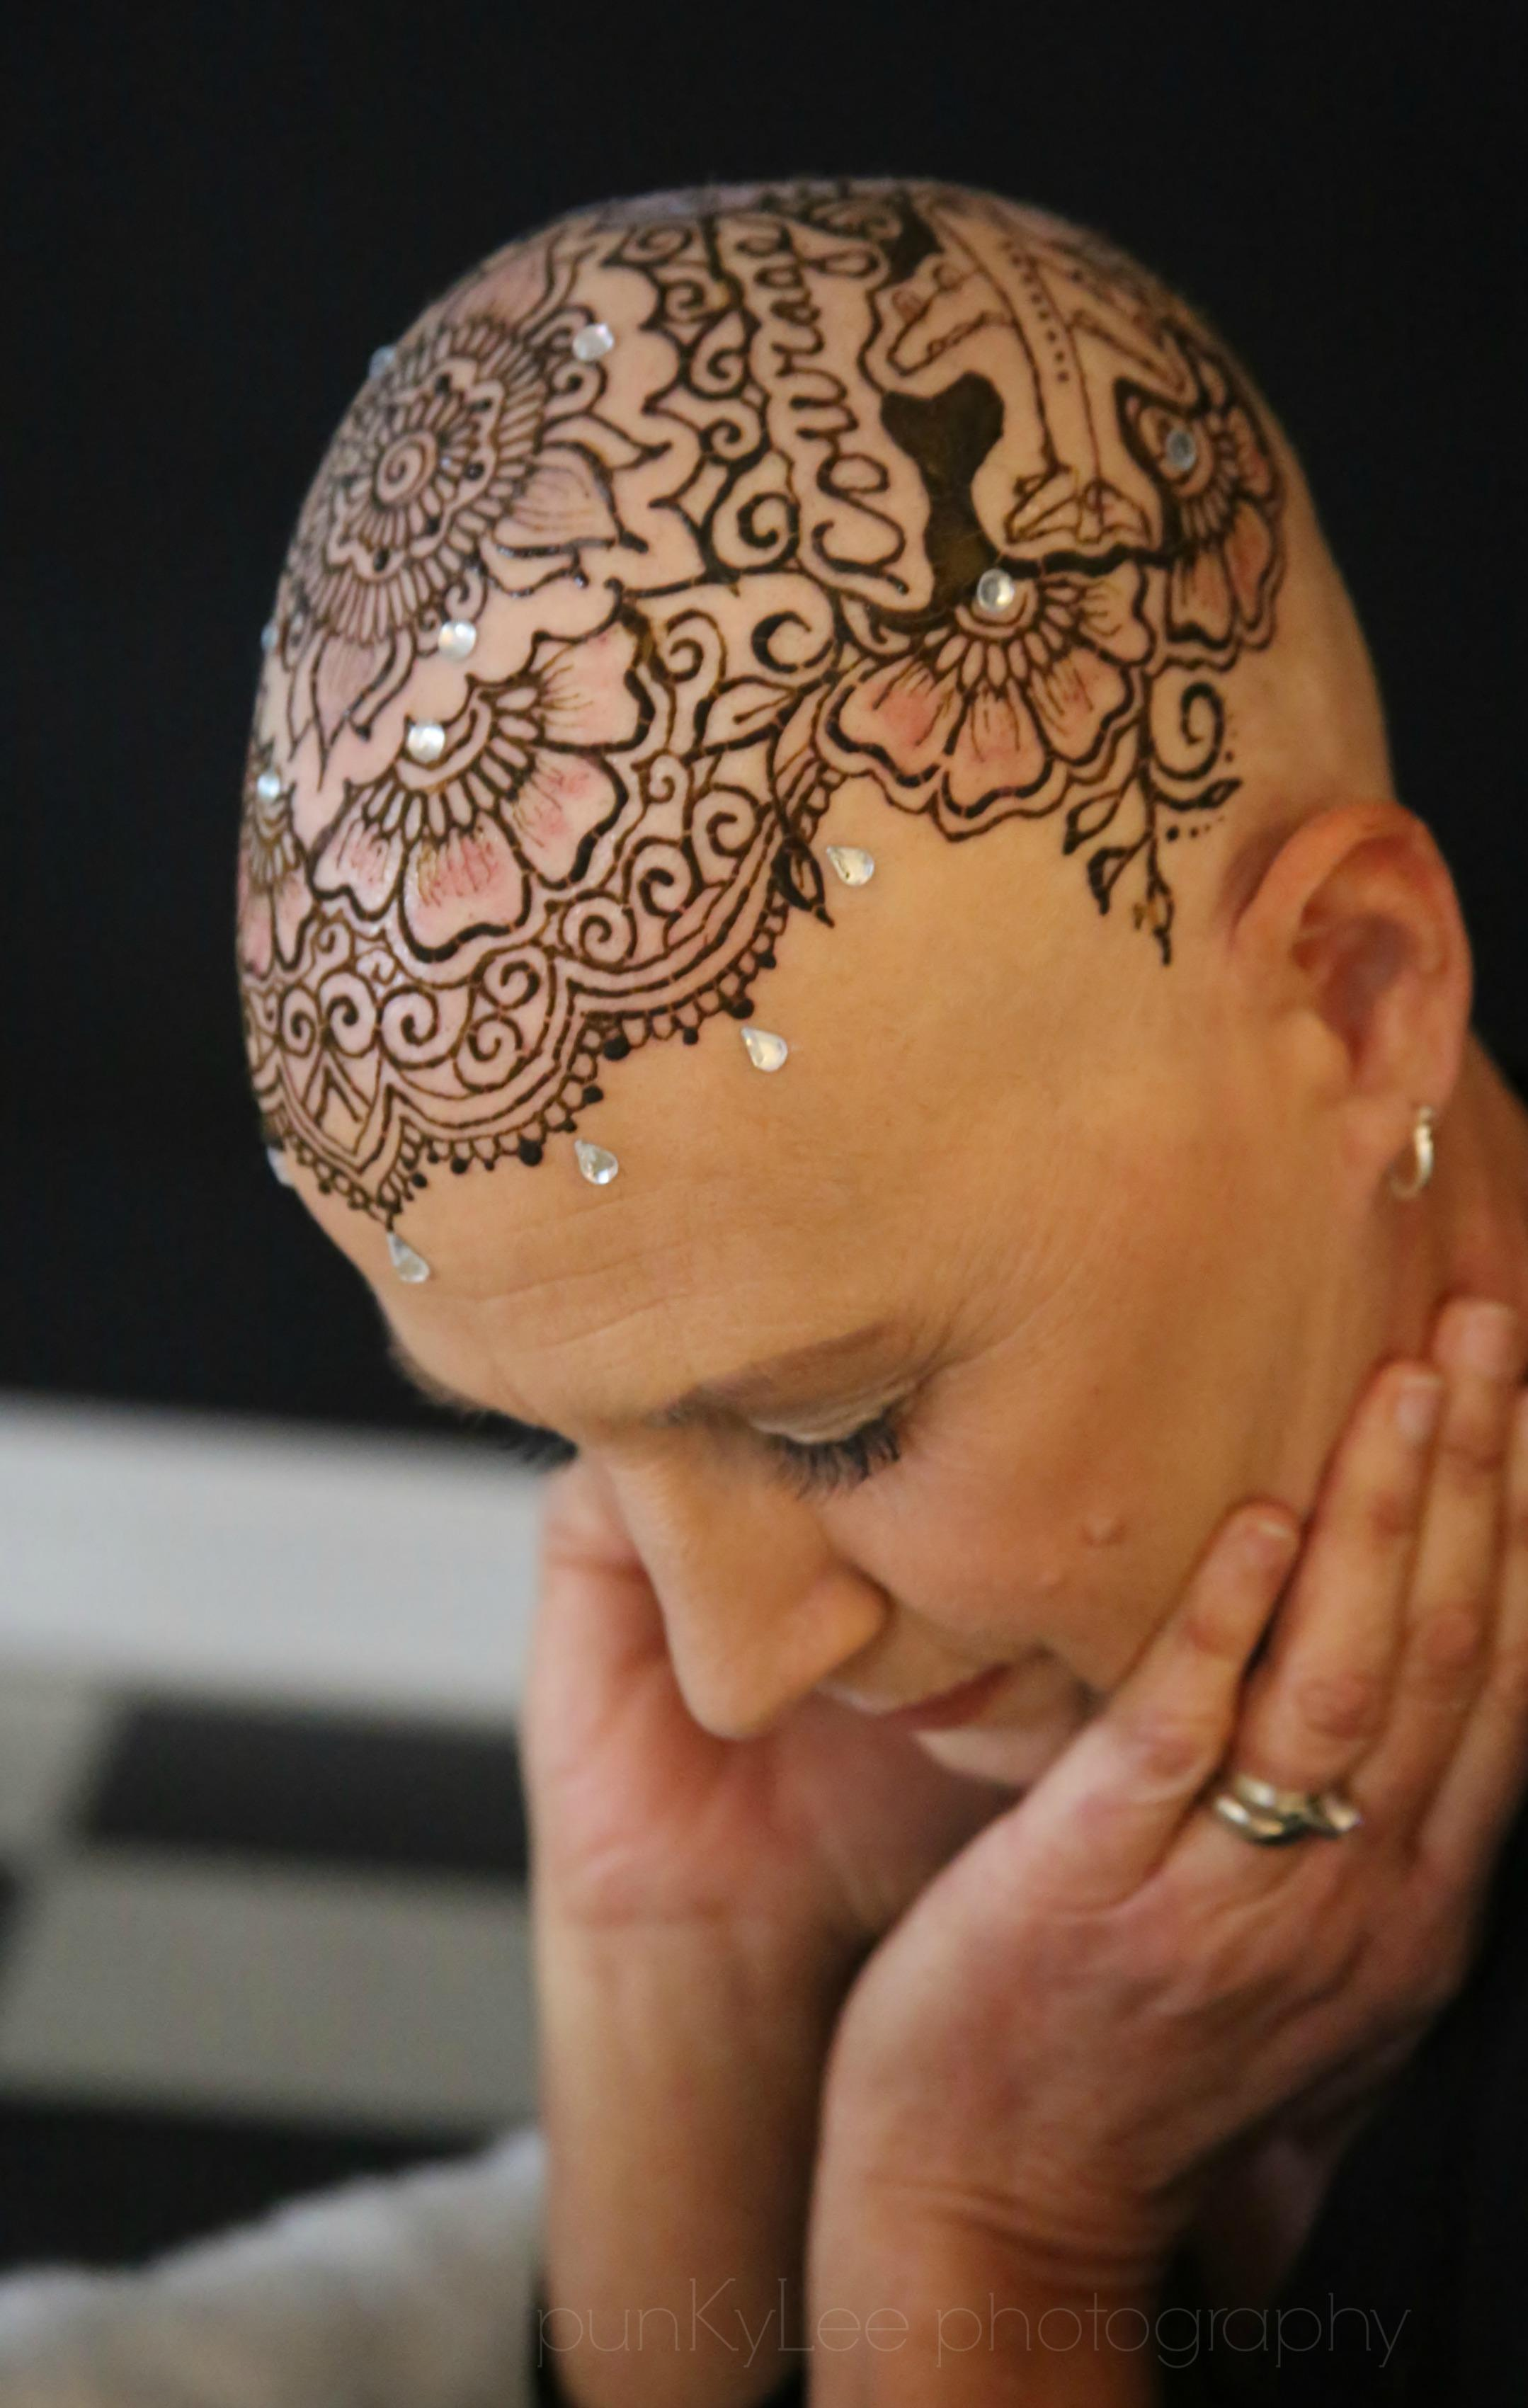 Crowns Of Courage Uses Henna Tattoos To Help Cancer Patients Heal